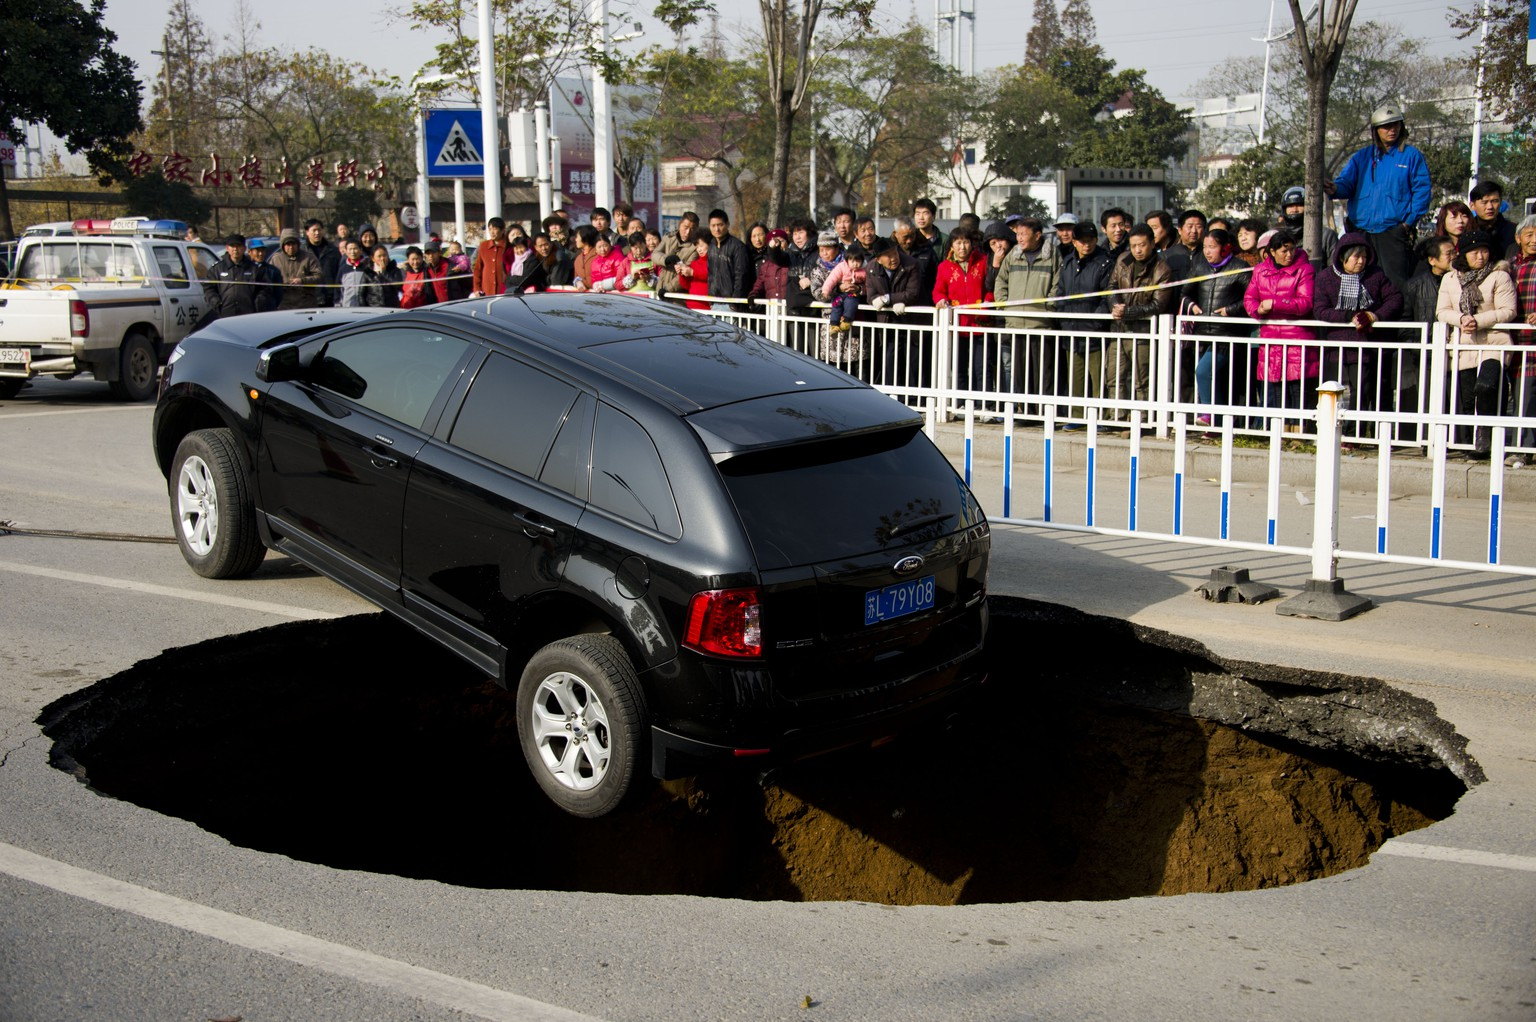 ZHENJIANG, CHINA - DECEMBER 12:  A Ford sedan car halts on the verge of a five meters wide and two meters deep hole at Yunlianghe Road on December 12, 2014 in Zhenjiang, Jiangsu Province of China. A Ford sedan car halted on the verge of a hole at Yunlianghe Road after the road collapsed and formed a five meters wide and two meters deep hole abound 8 o'clock on Friday morning. The road was just opened for two years and the reason is still under investigation.  (Photo by ChinaFotoPress/ChinaFotoPress via Getty Images)